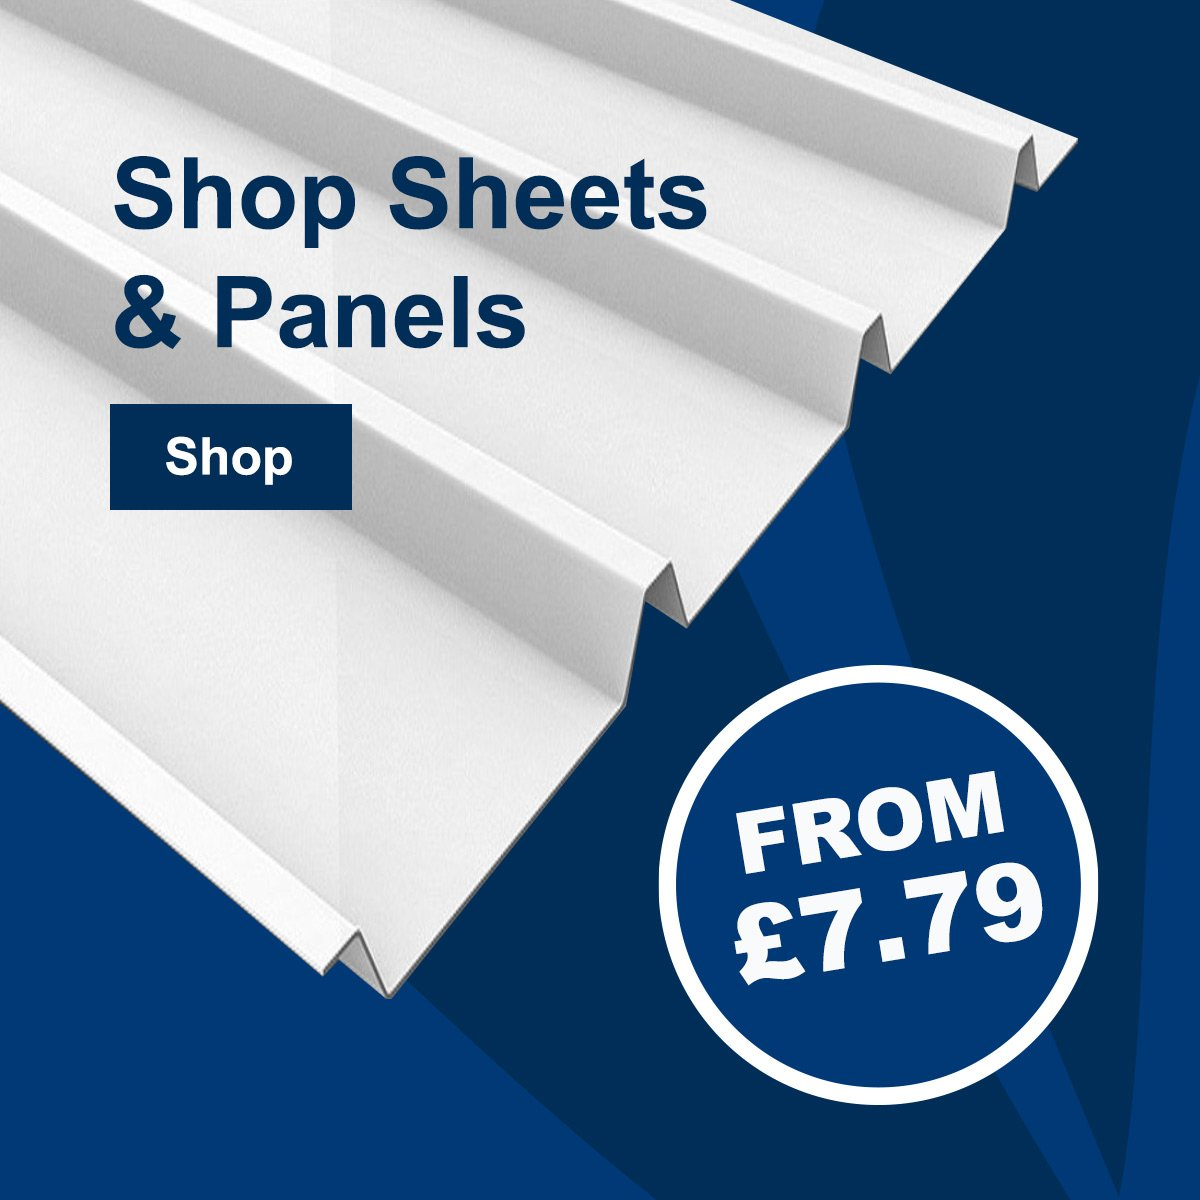 KCS Trade Roofing and Cladding Supplies - Cladding Sheets and Cladding Panels